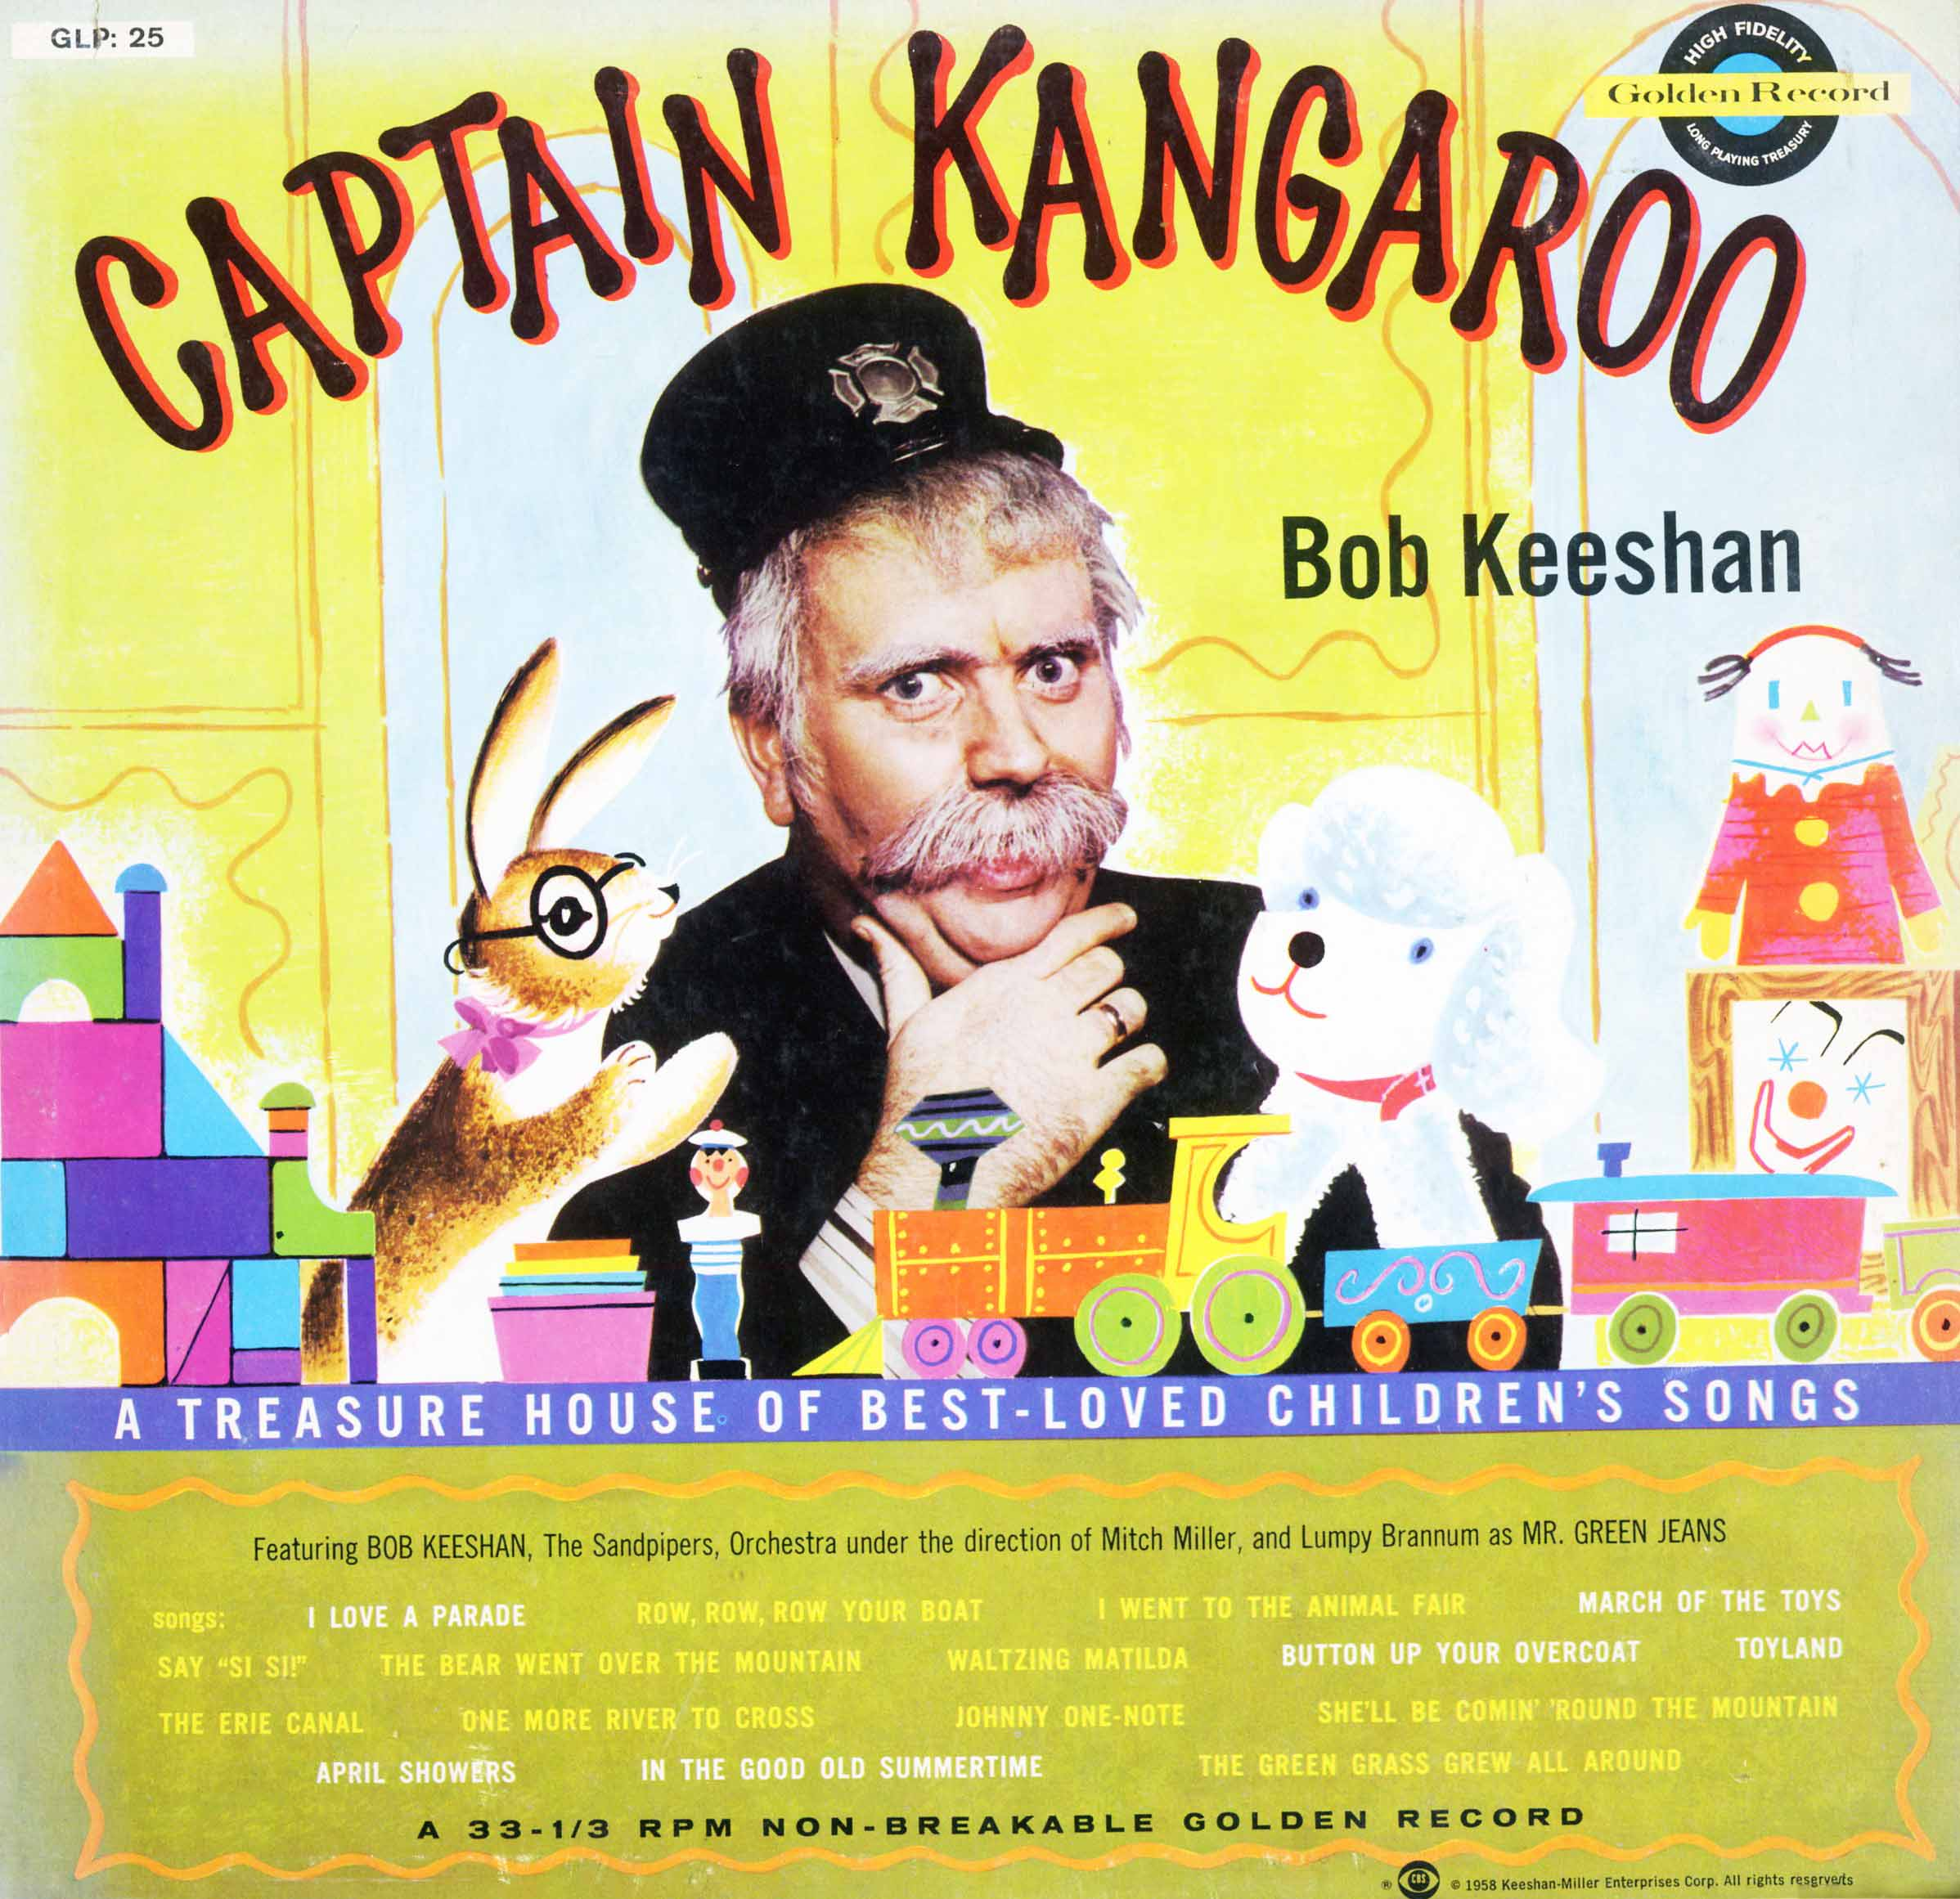 LP25 - Captain Kangaroo - Bob Keeshan on CD